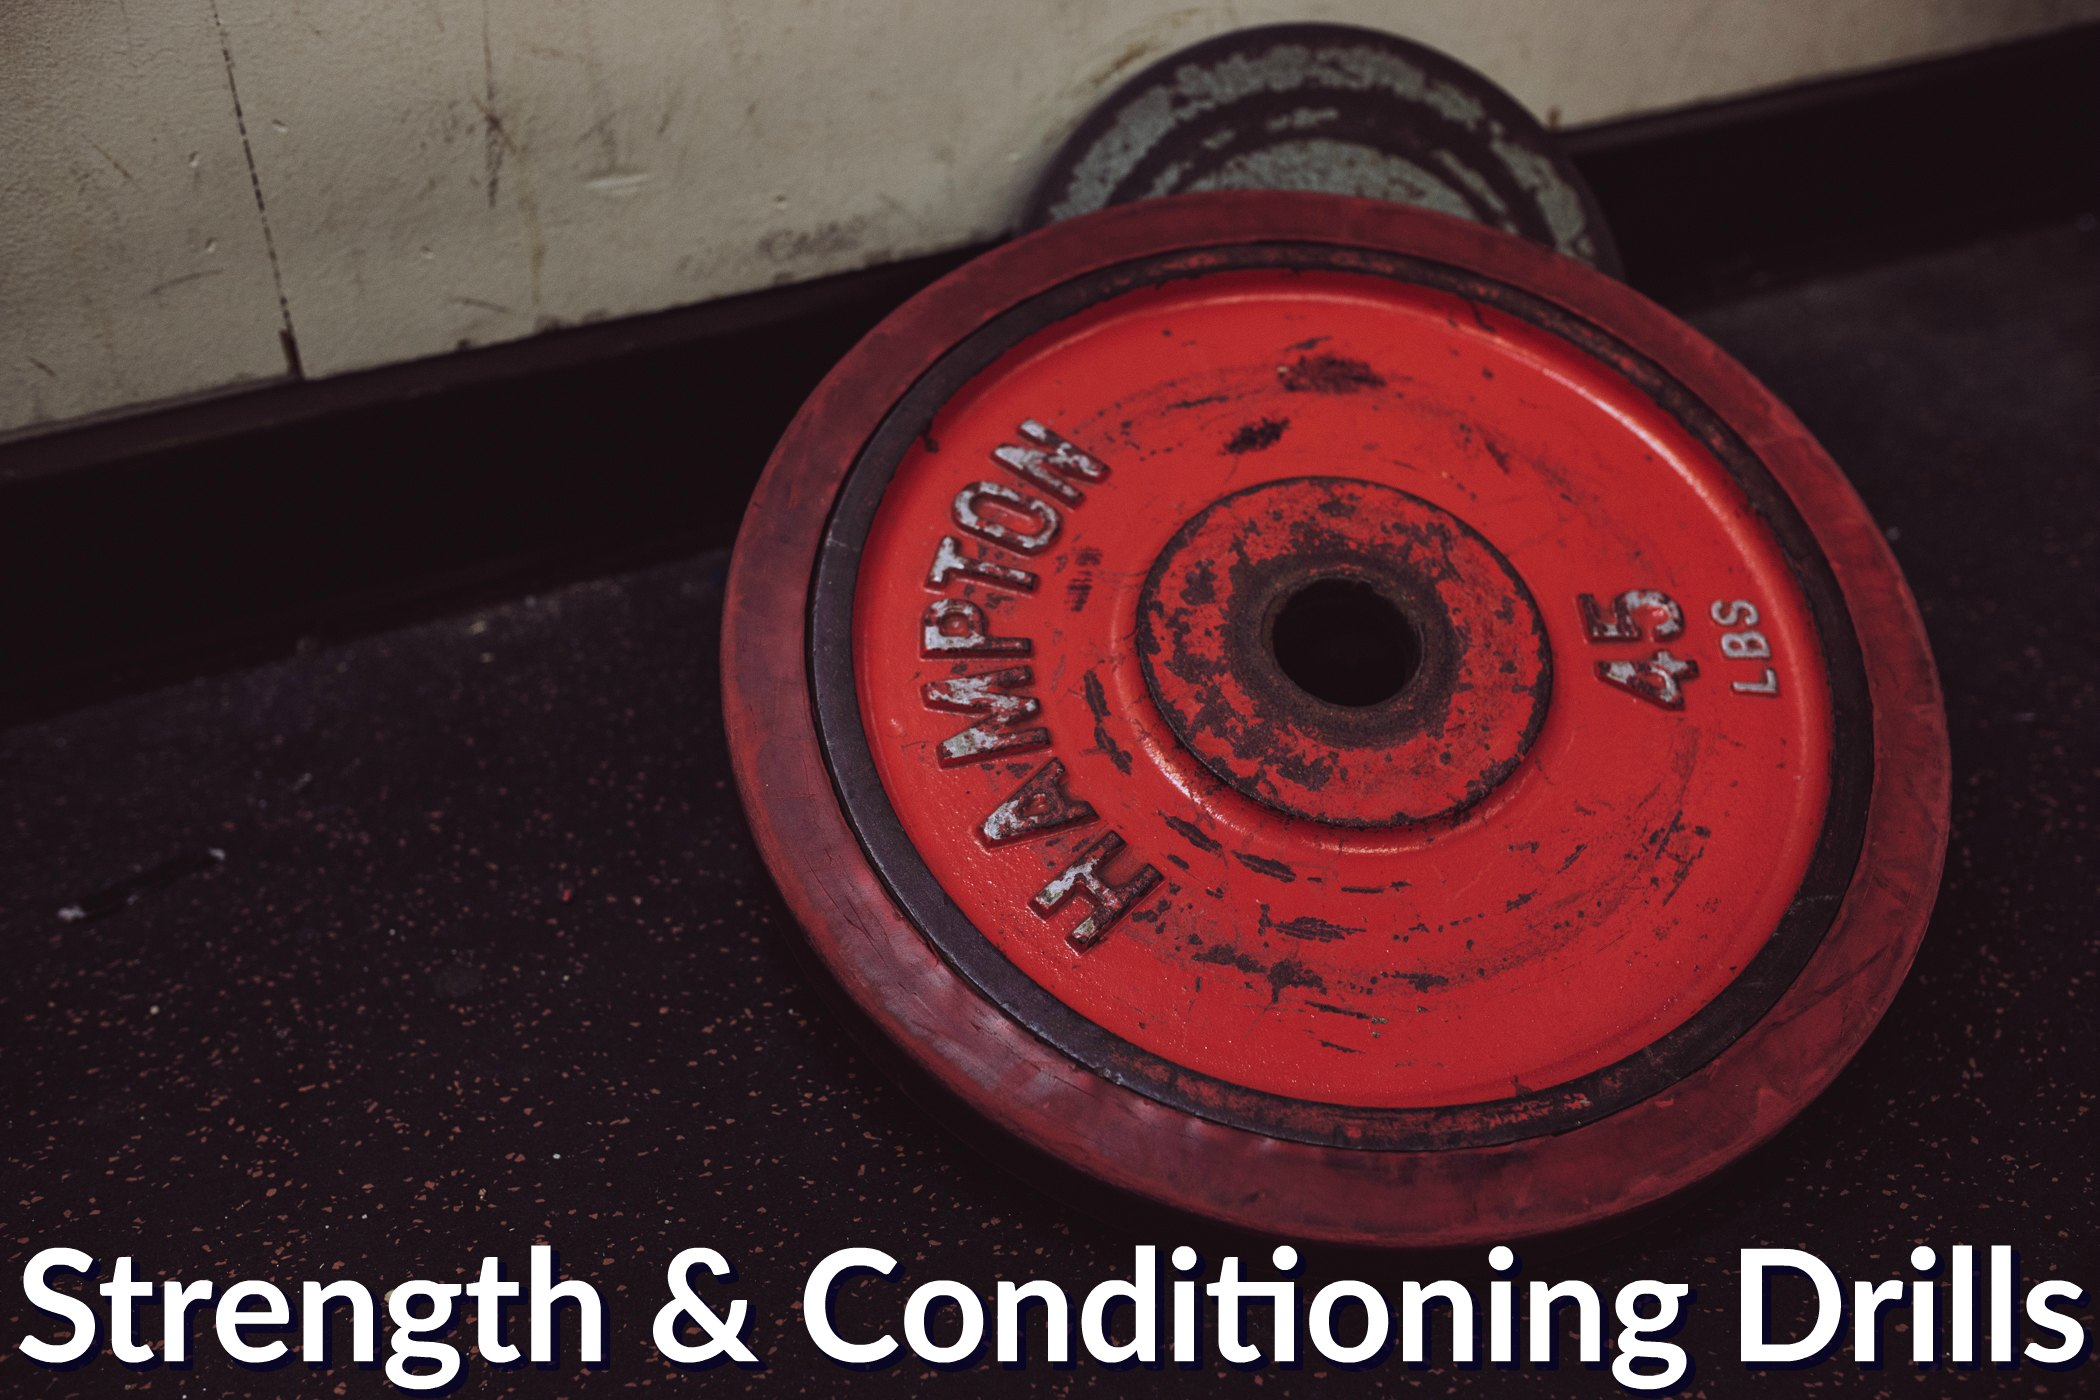 strength-conditioning-drills.jpg